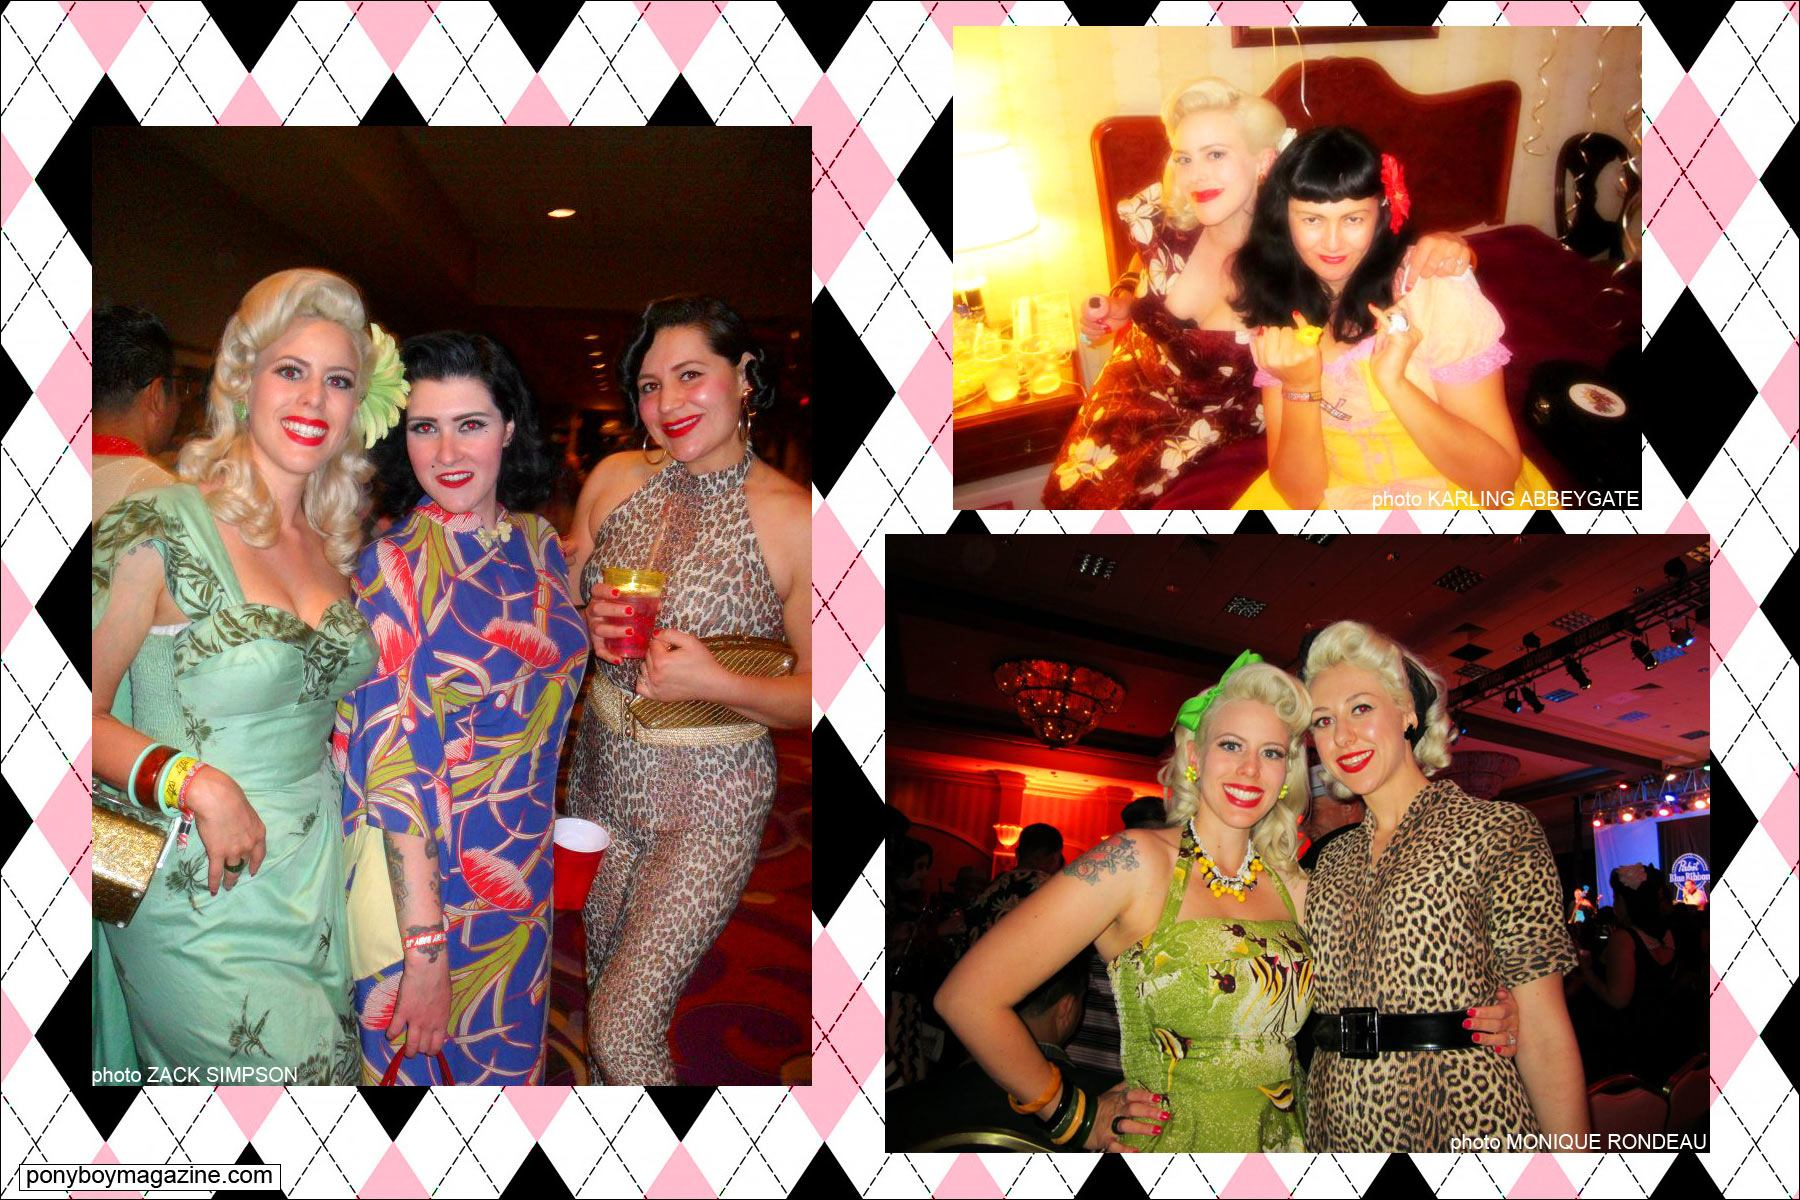 Dollie Deville, The Rockabilly Socialite, photographed at various events. Ponyboy Magazine.